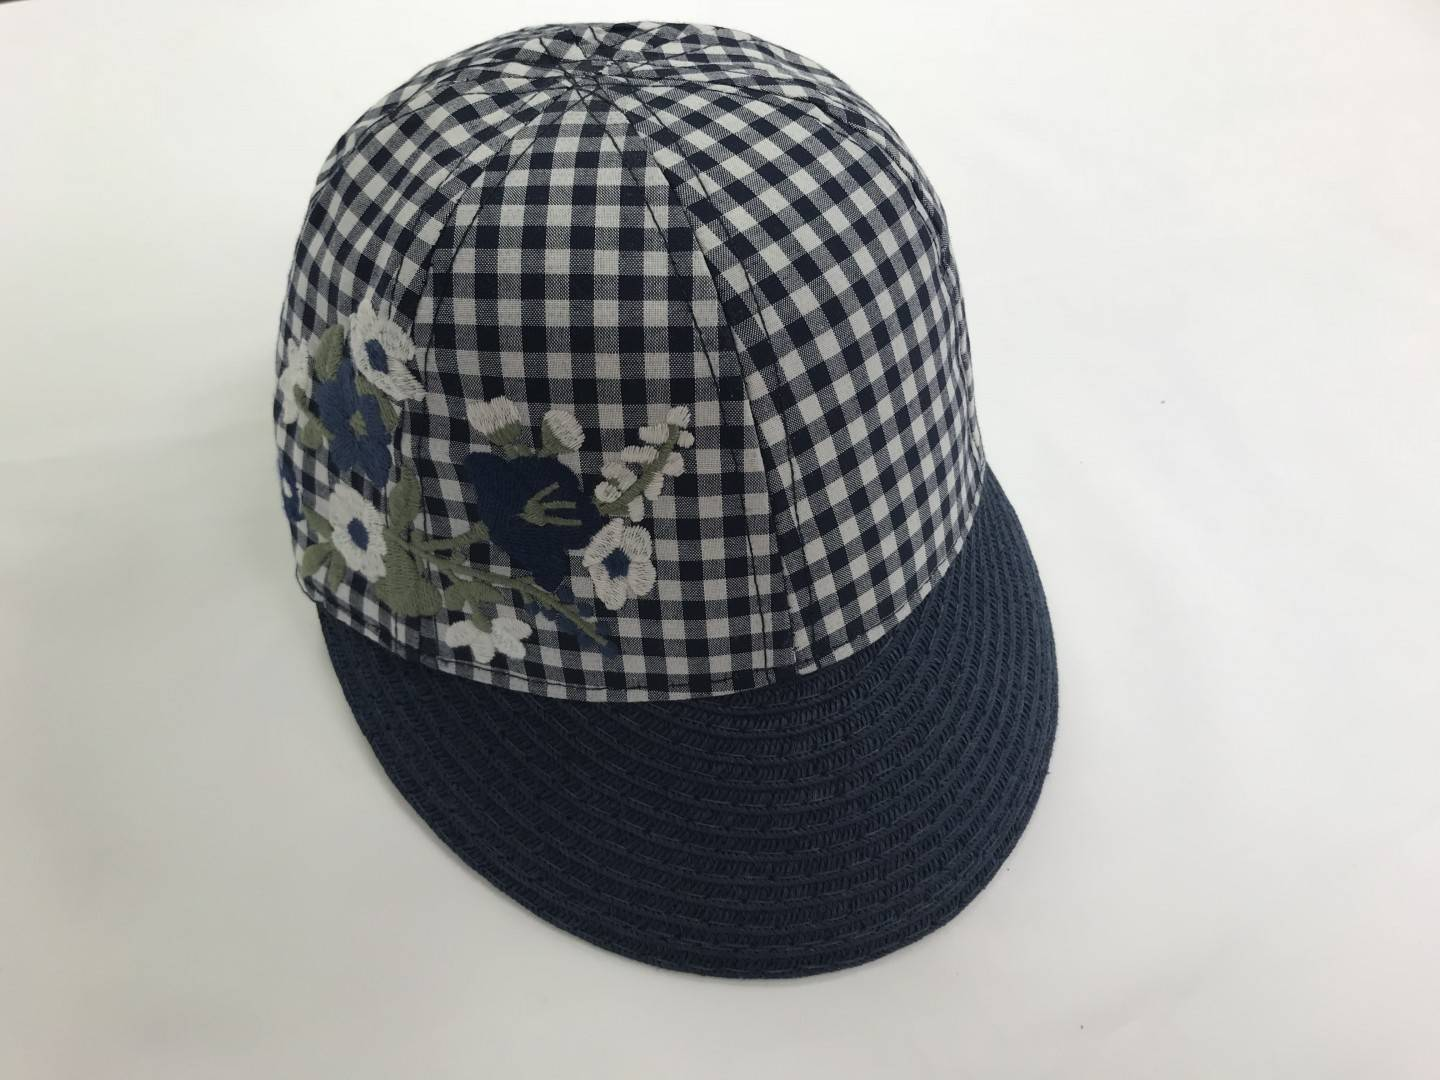 MAYORAL NAVY AND WHITE CAP SIZES SMALL-LARGE